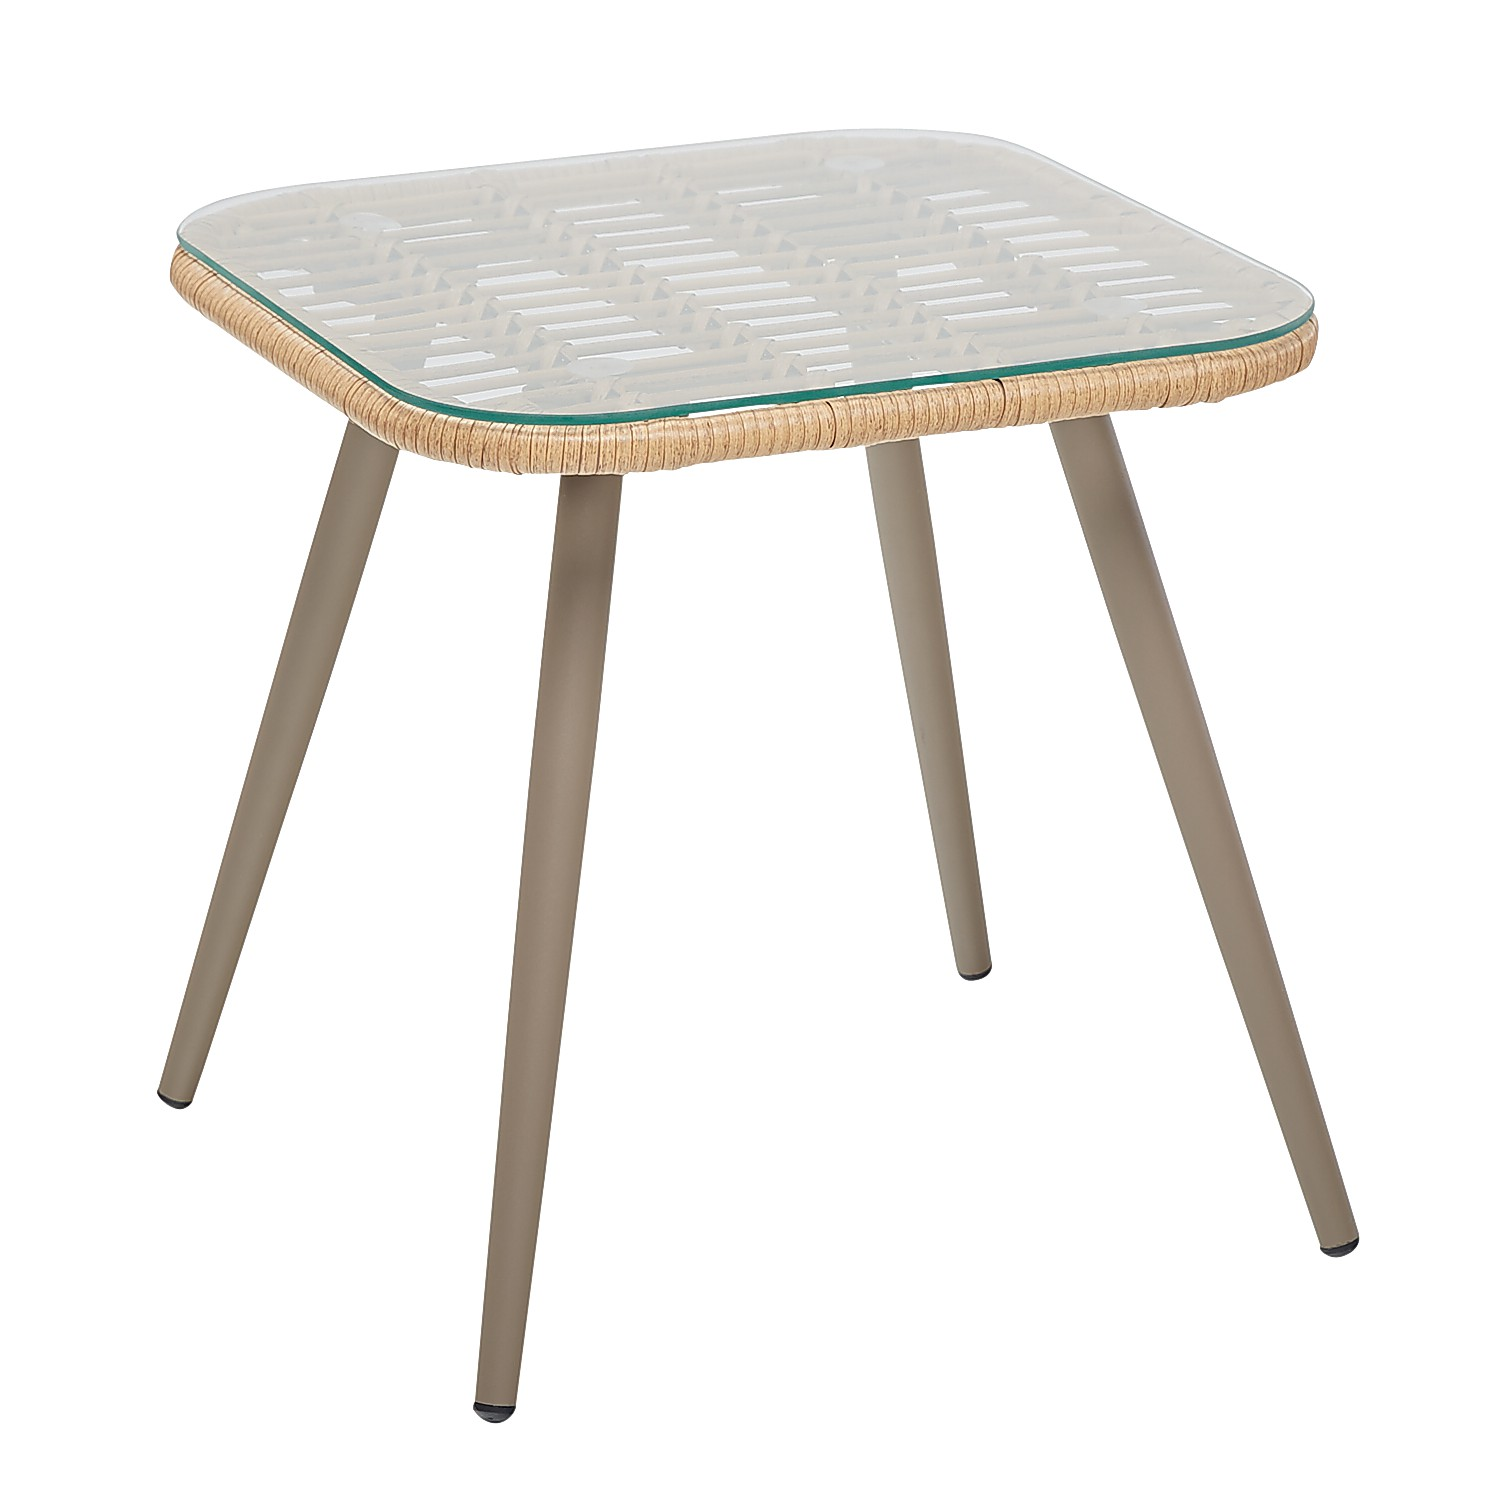 Natural Wicker Deluxe Side Table with Glass Top